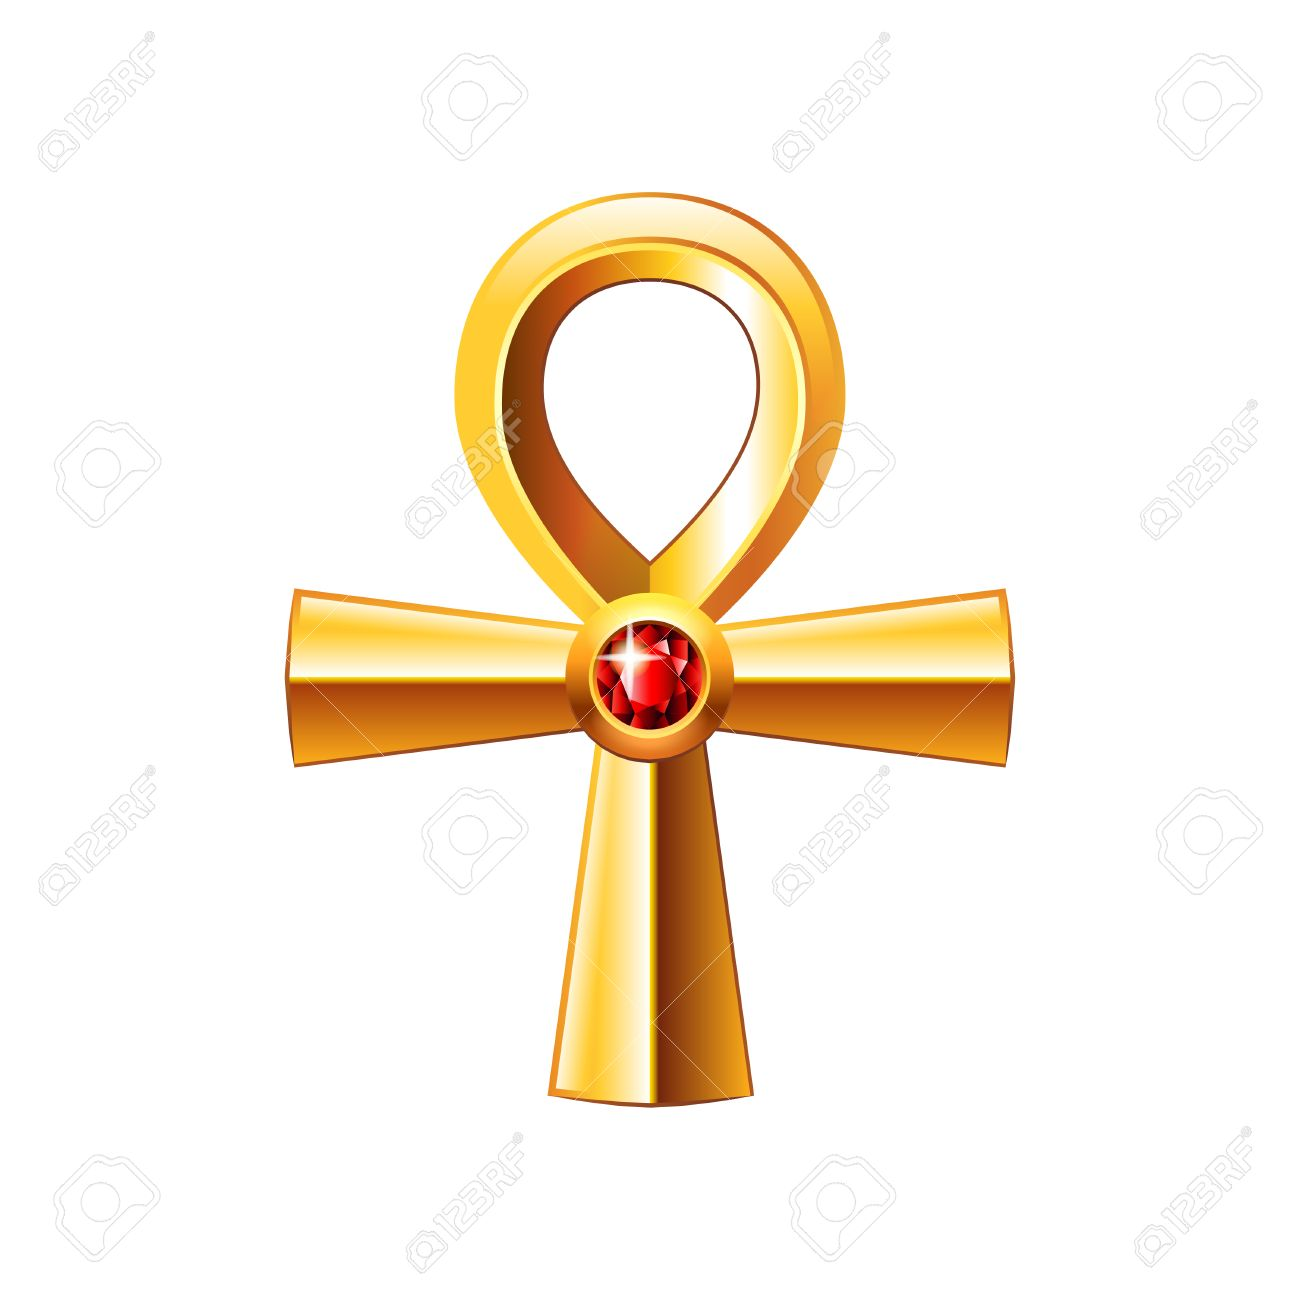 Egyptian Cross Ankh Isolated On White Photo Realistic Vector